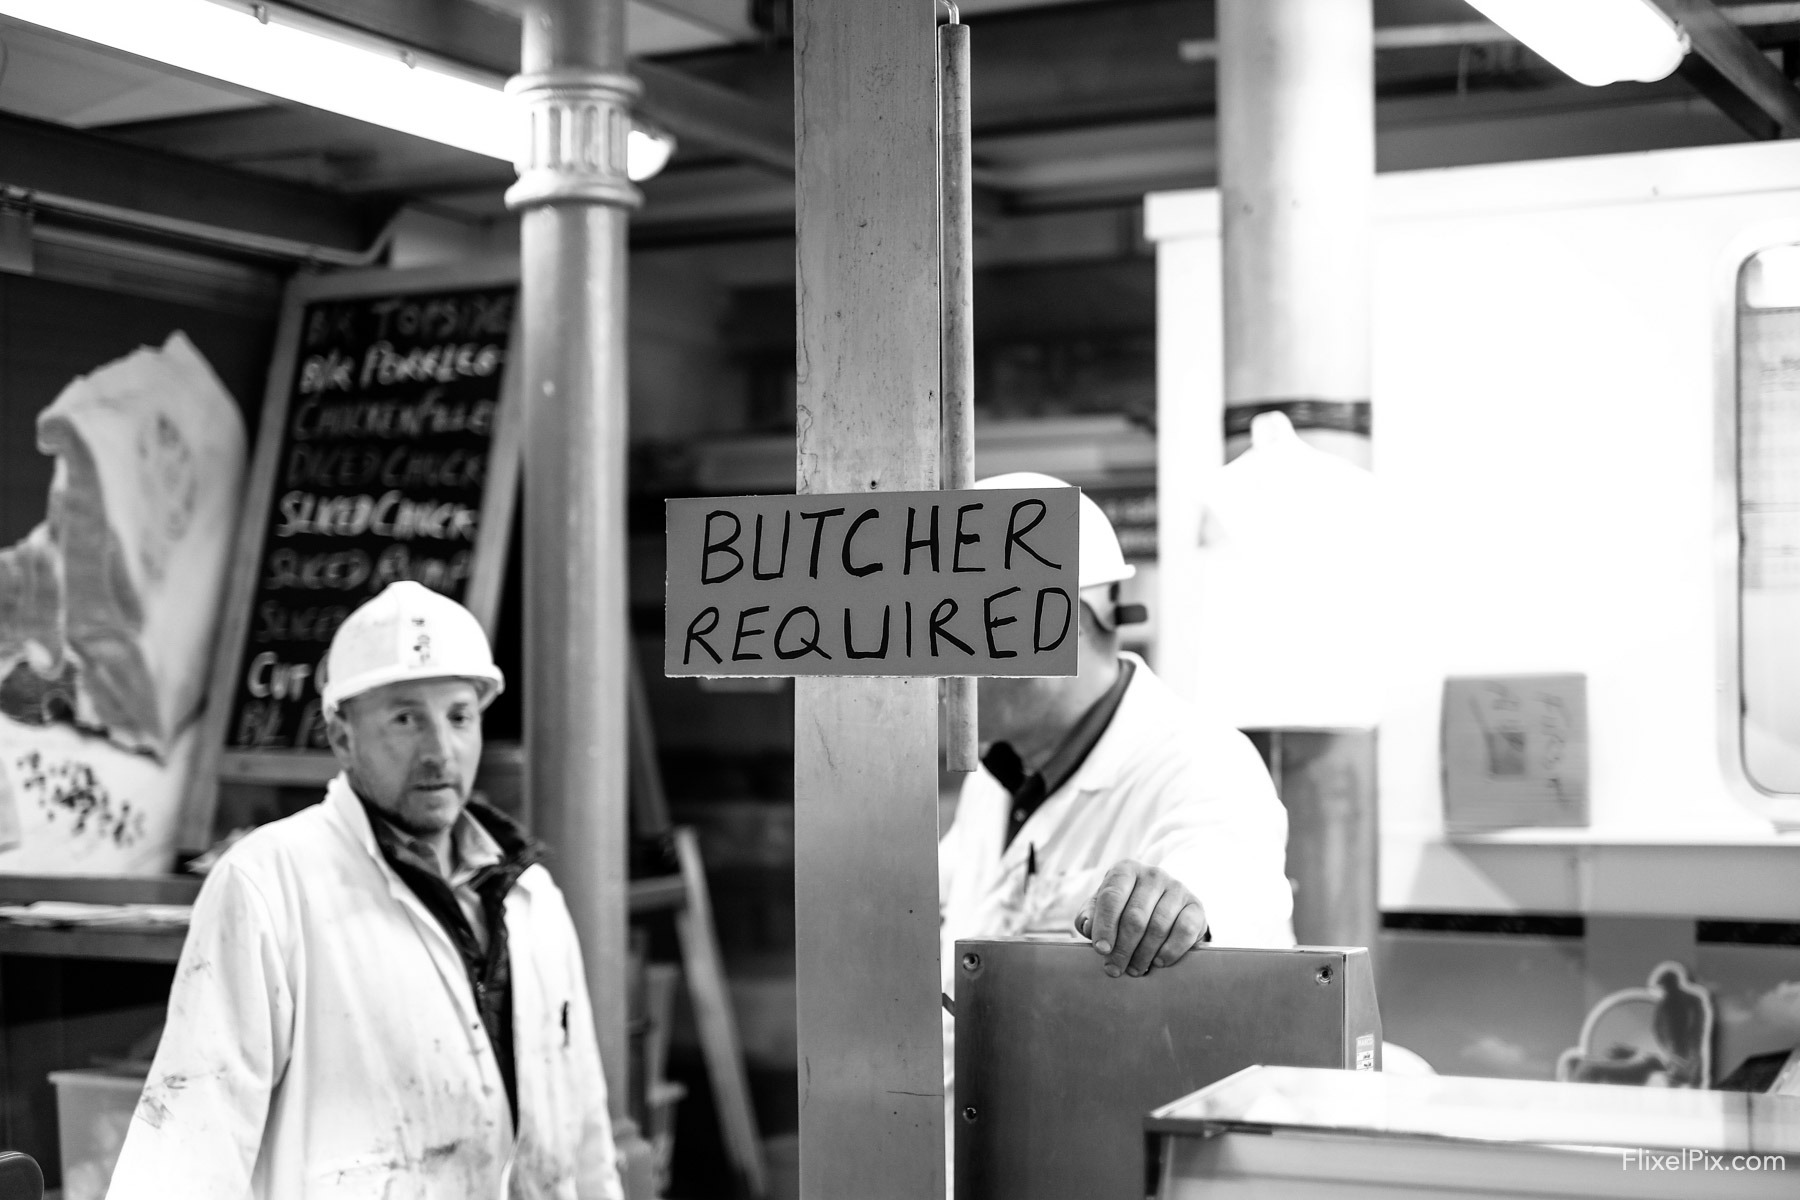 Butcher Required